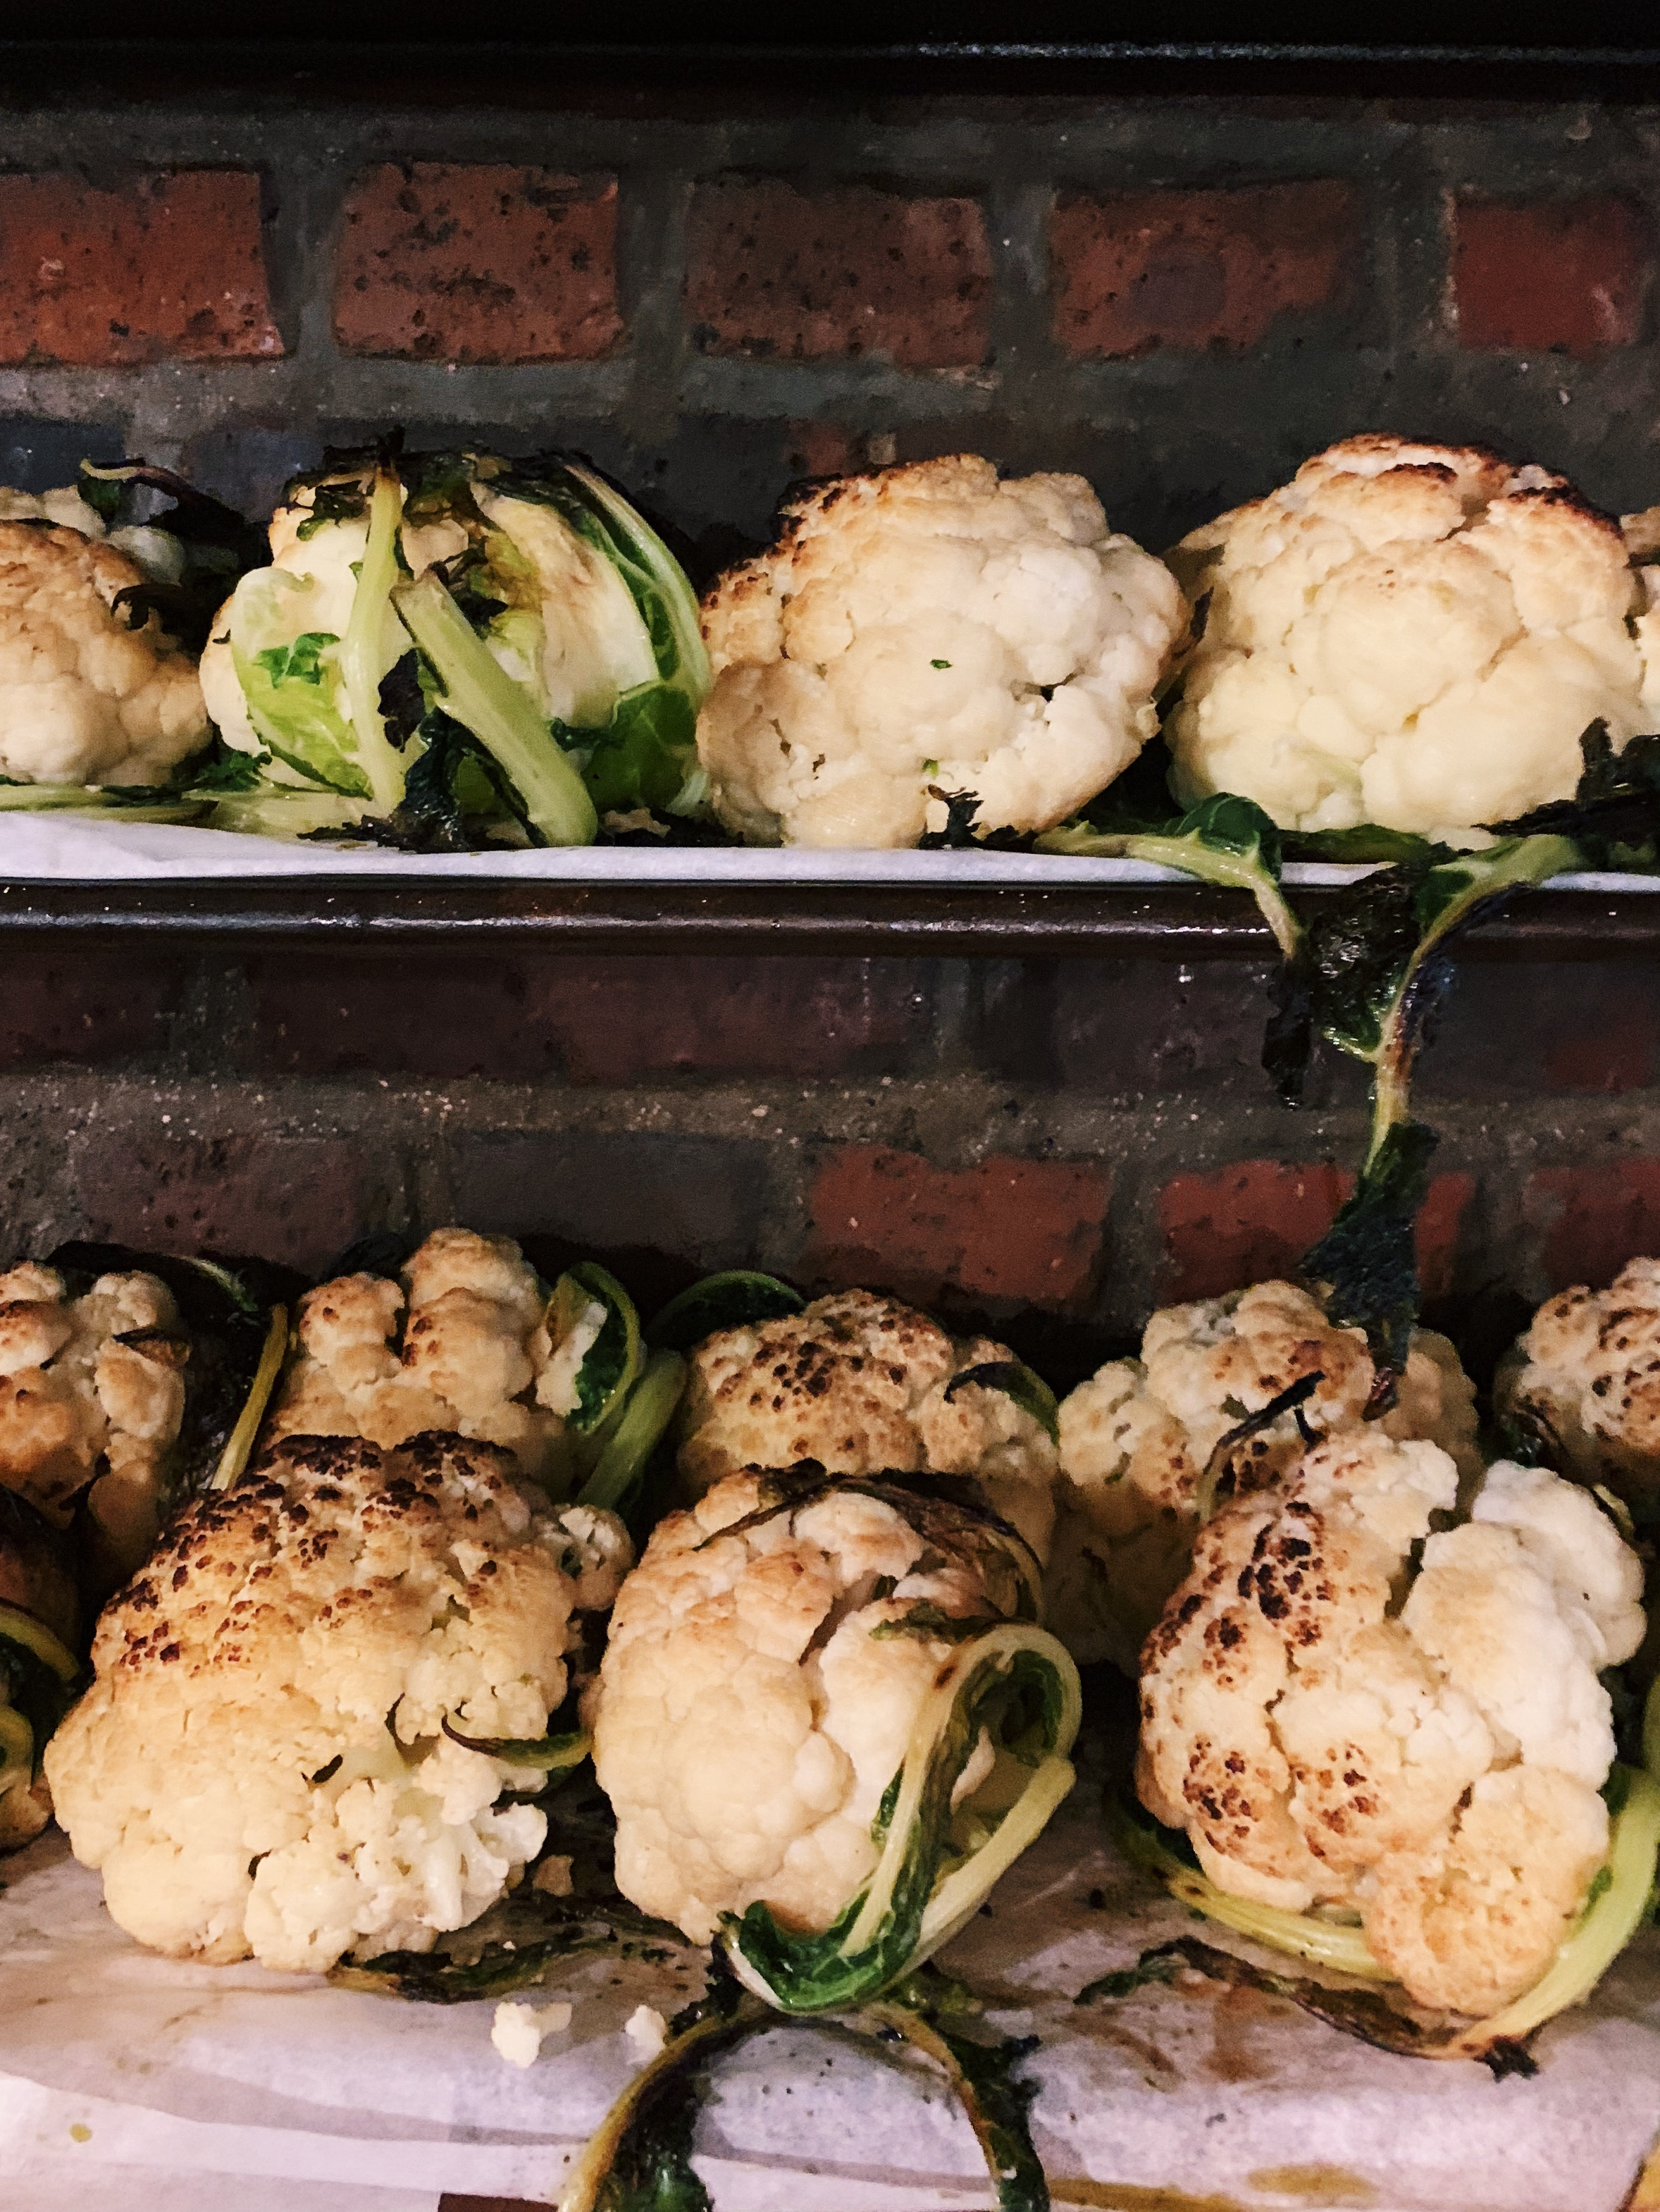 Entire roasted cauliflower heads at Miznon.